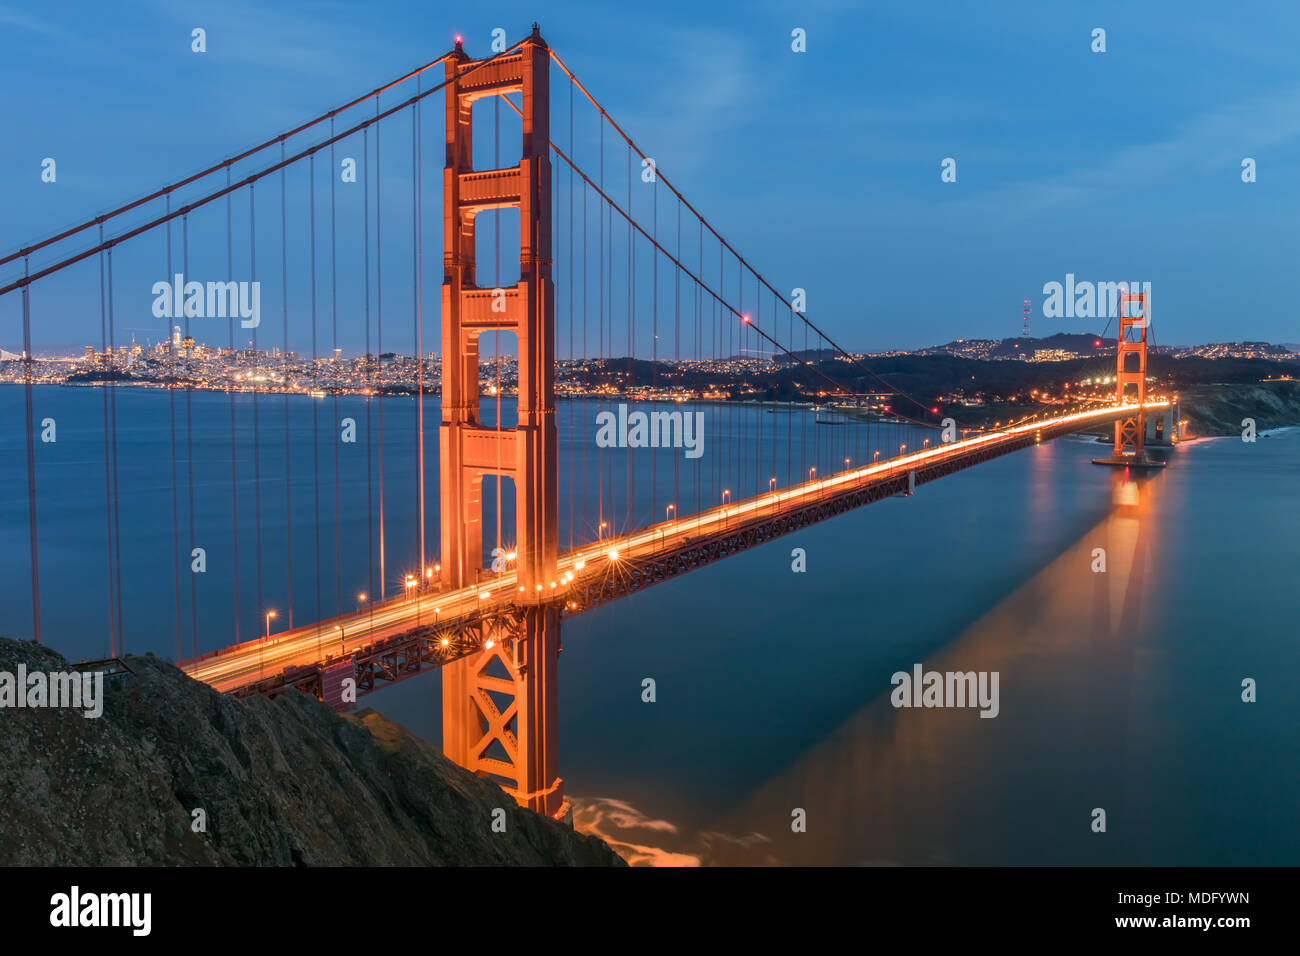 Views of the Golden Gate Bridge and San Francisco skyline from Battery Spencer. - Stock Image